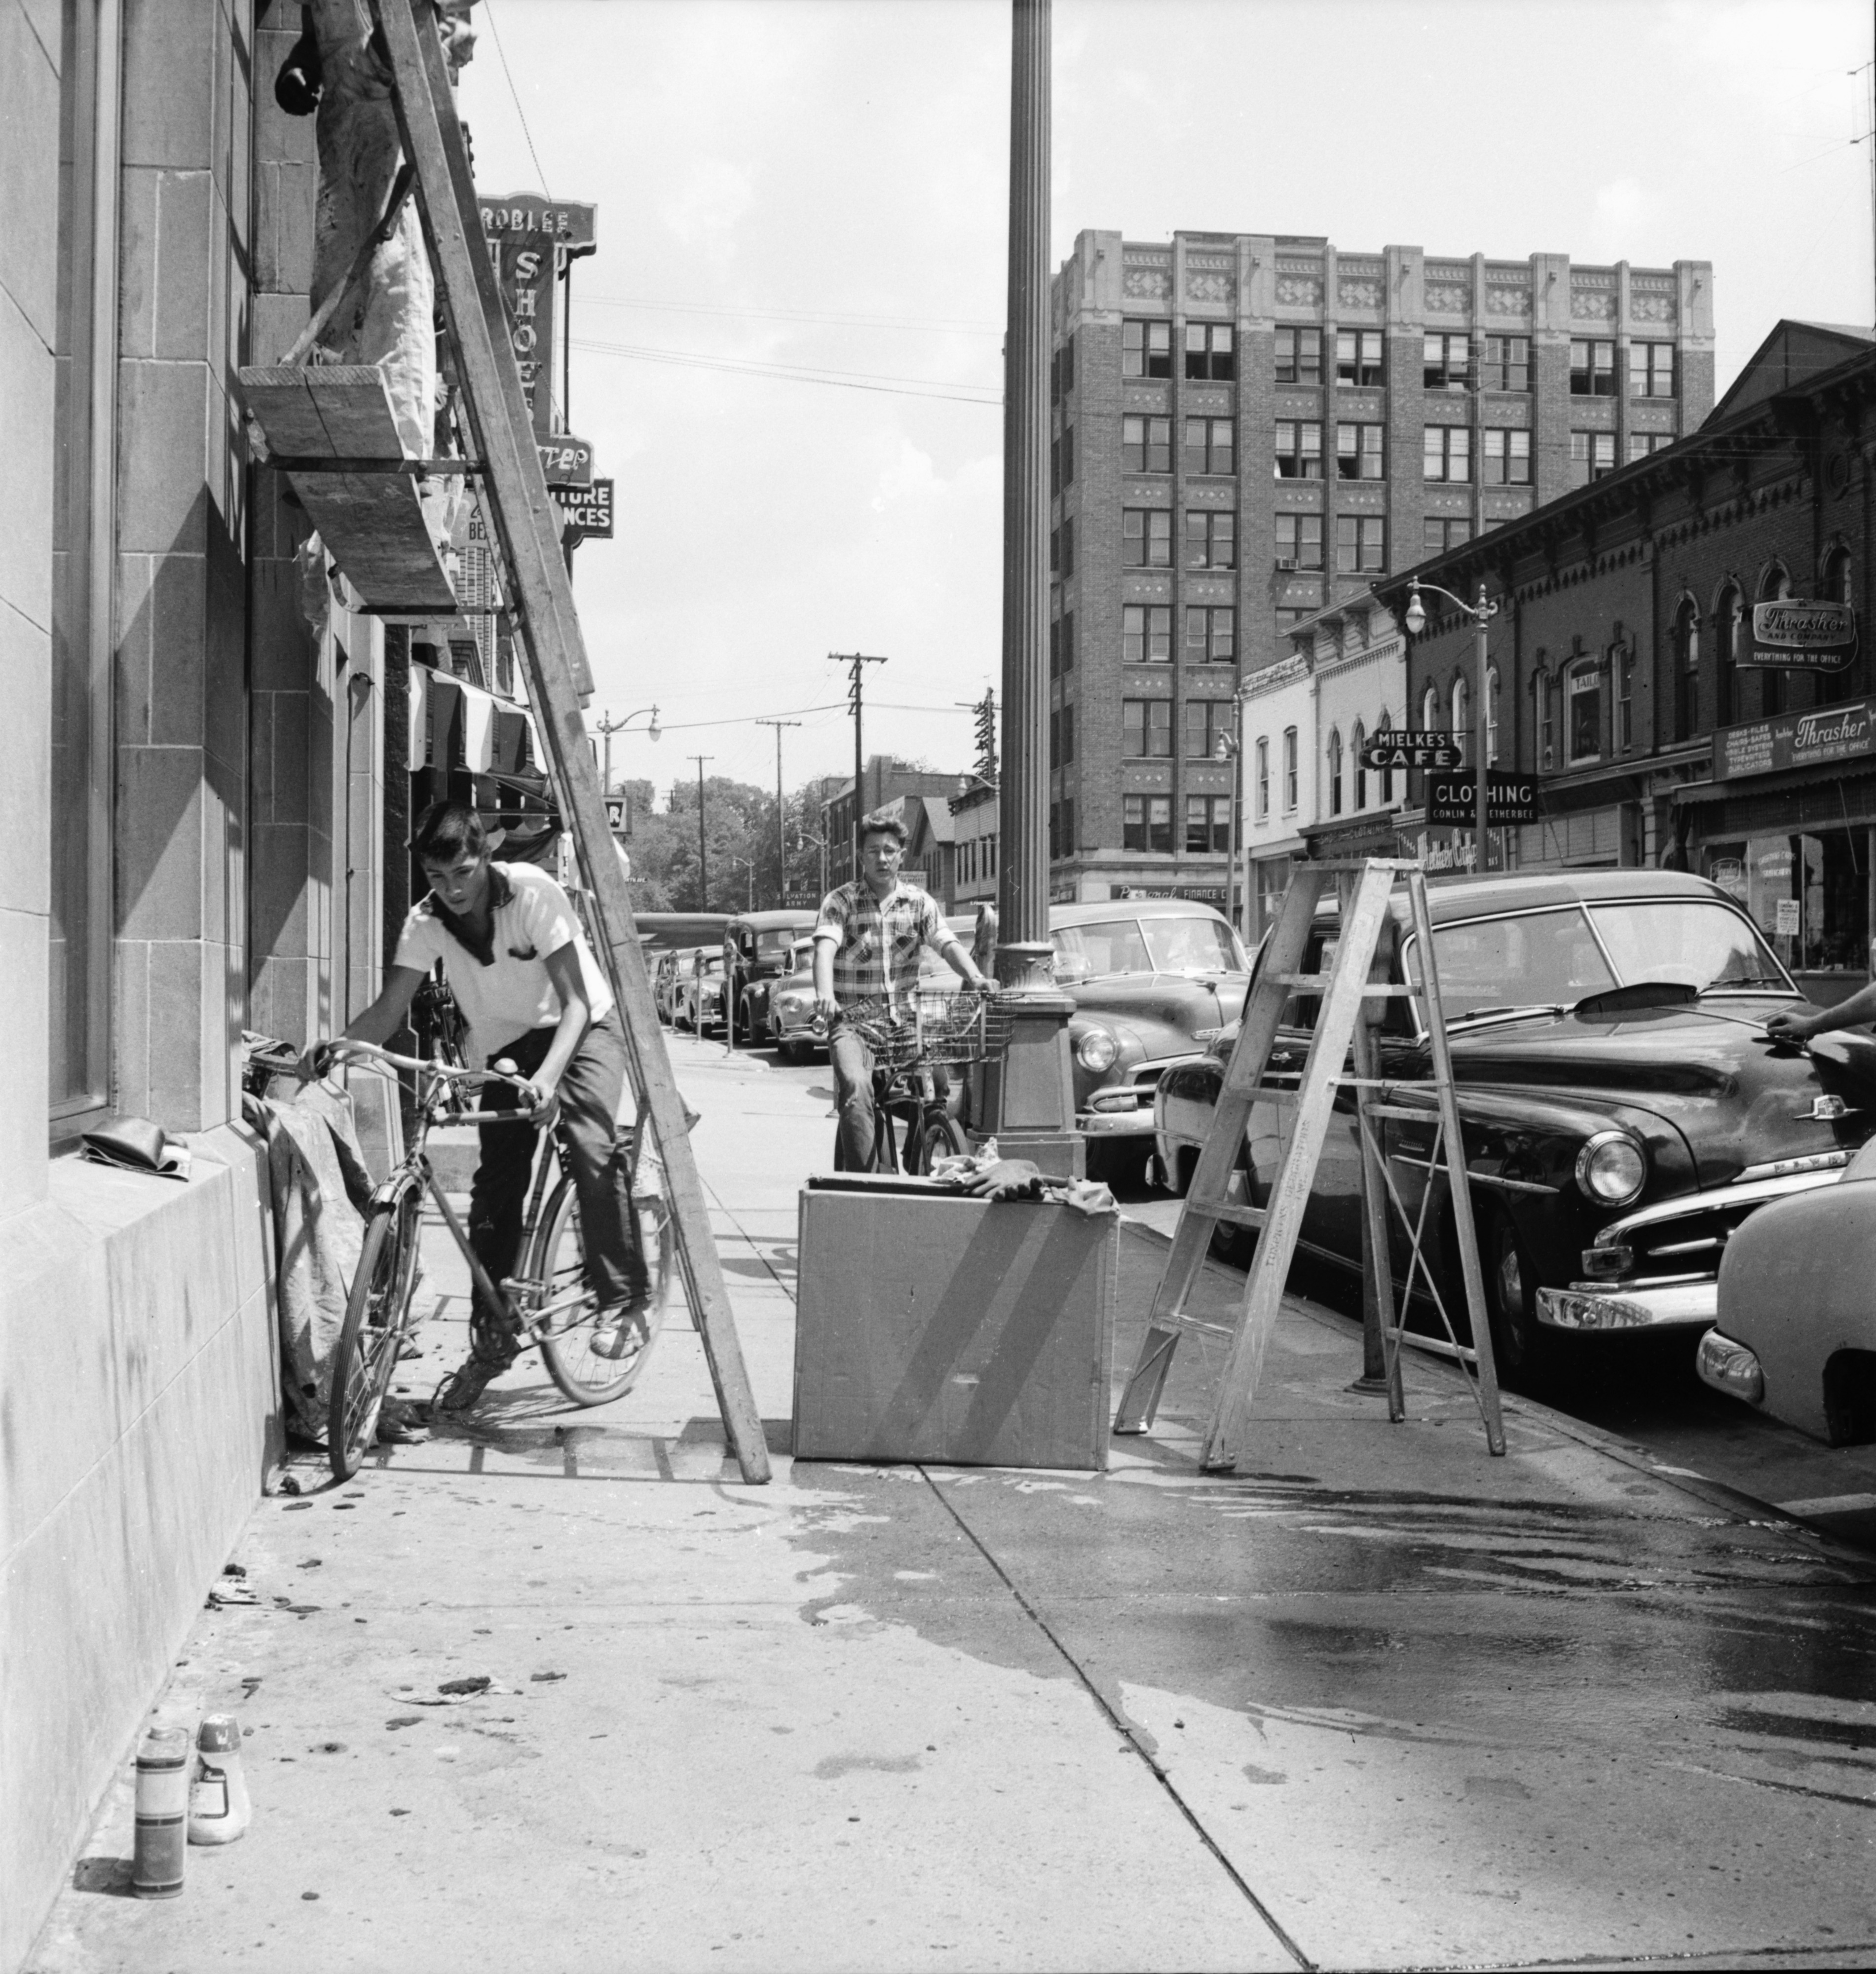 John Lopez guides his bike under a ladder outside State Savings Bank, 103 Washington St., August 1954 image